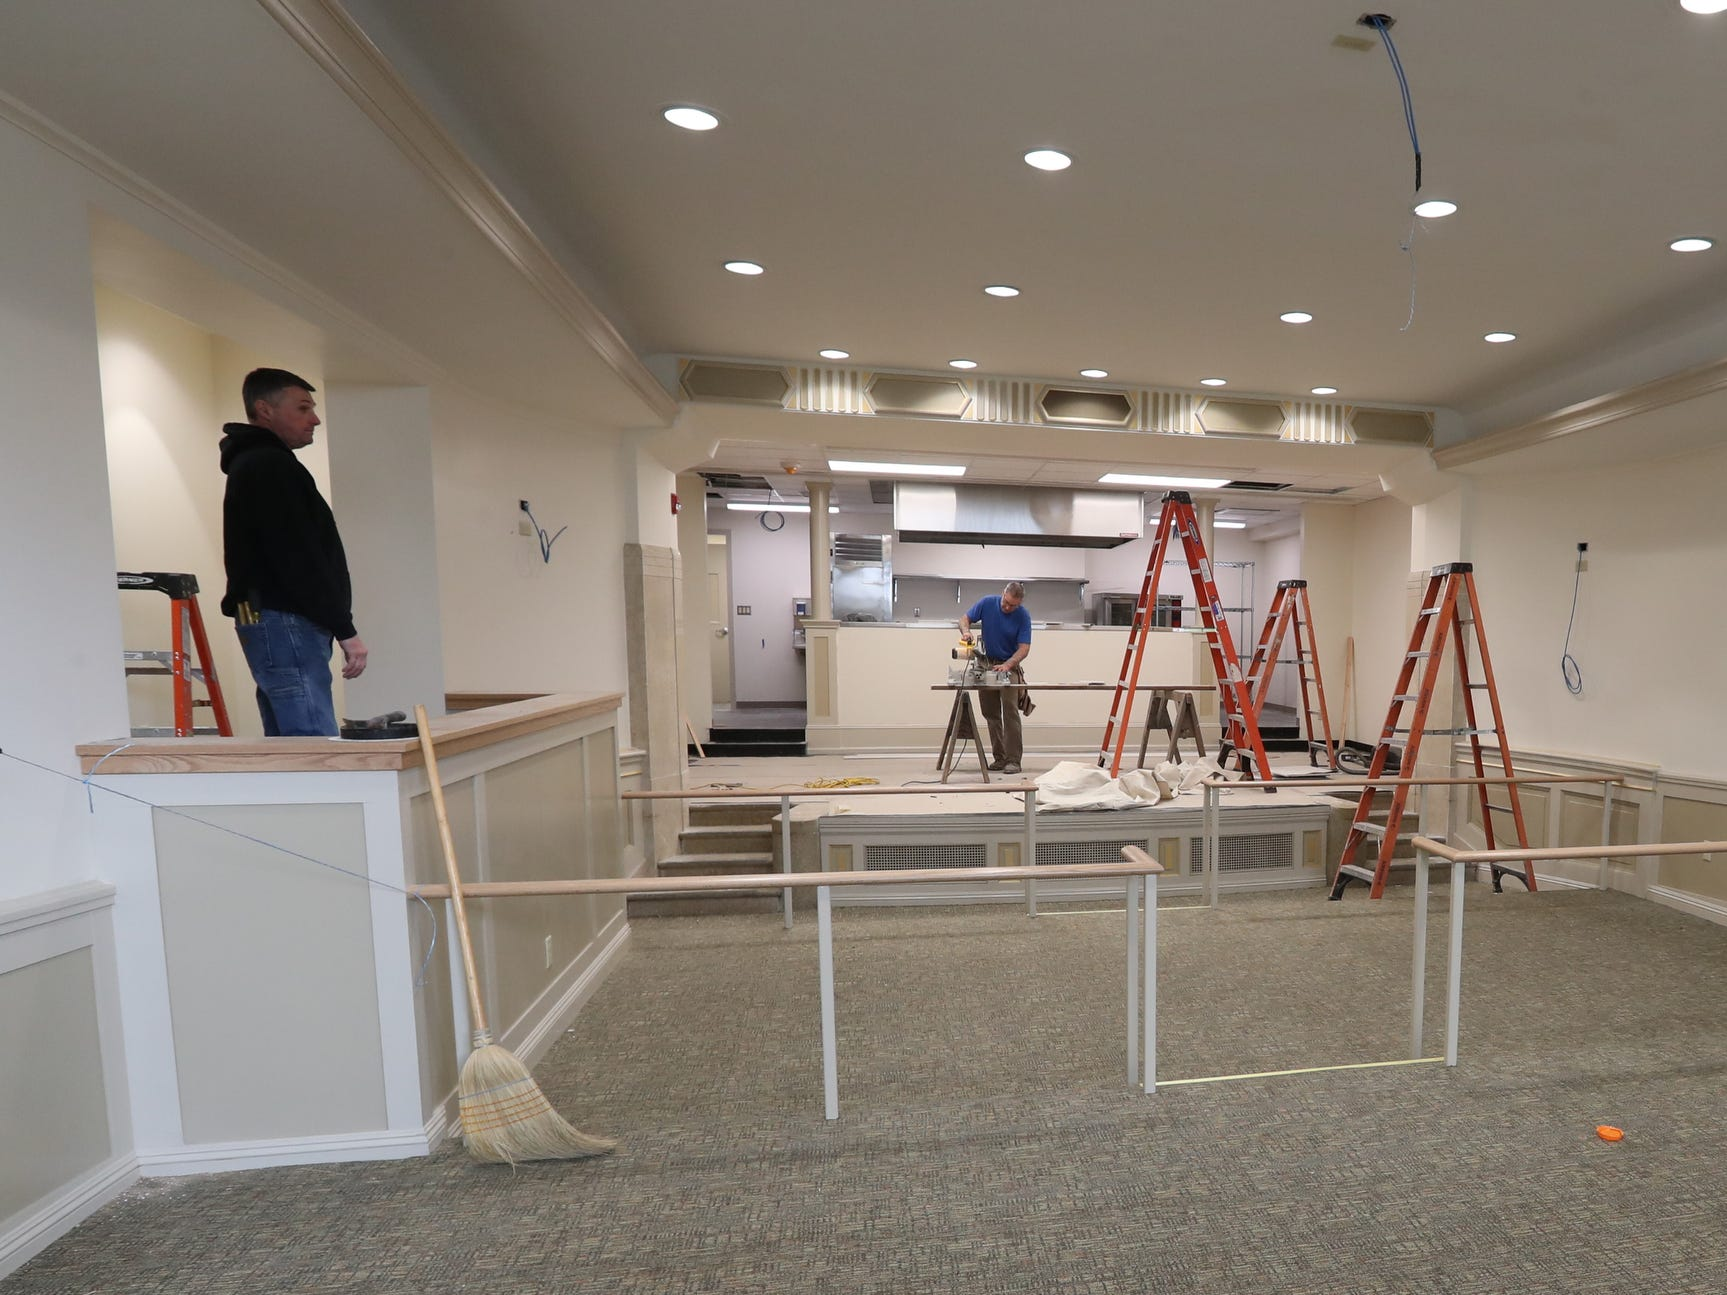 The mixed use theater at Rockland Community College's Hospitality and Culinary Arts Center in Nyack is in the final stages of preparation.  Thursday, January 17, 2019.